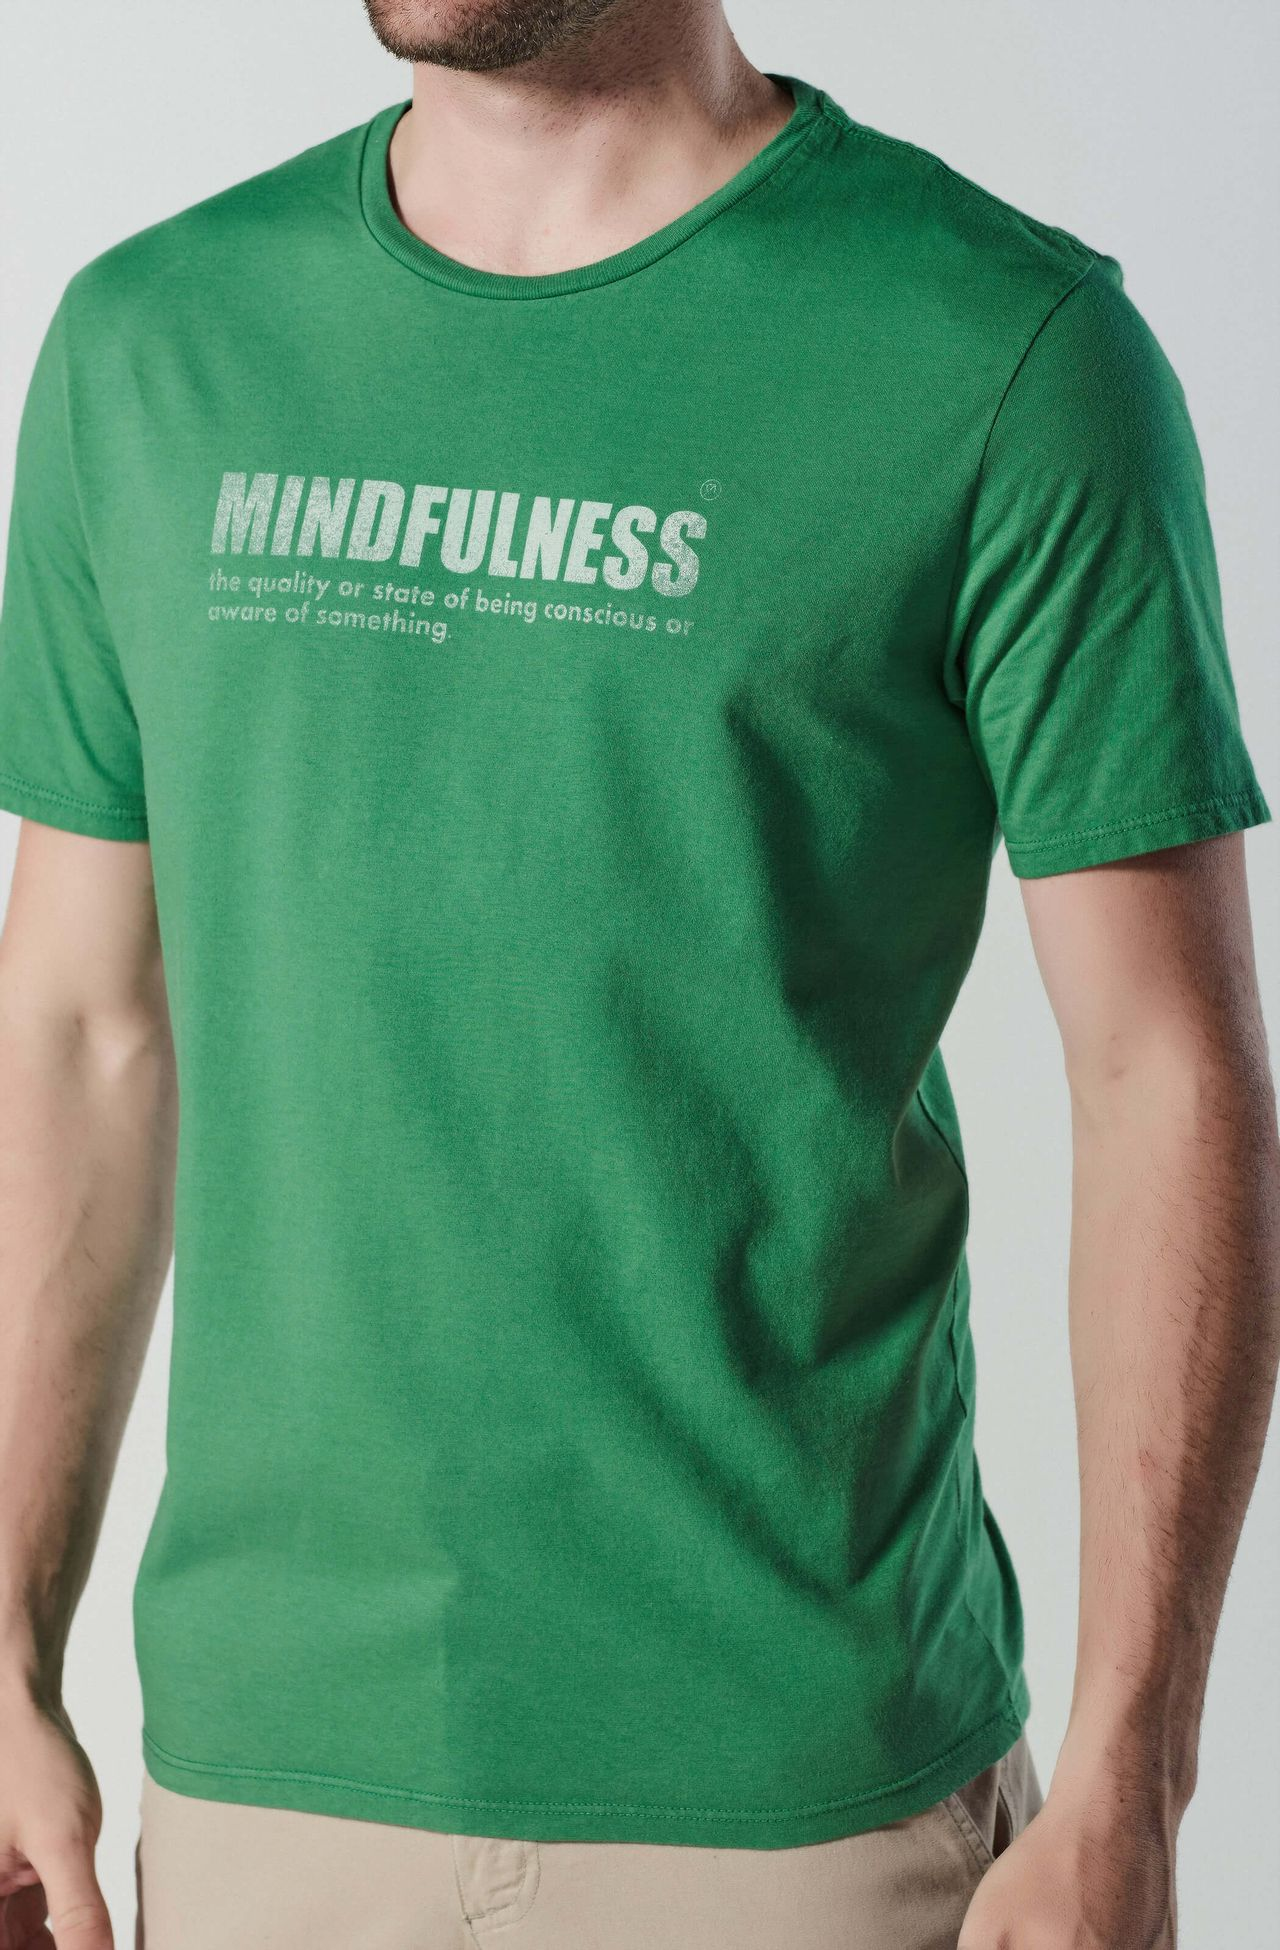 8353CCZ00022_665_3-TSHIRT-MC-MINDFULNESS